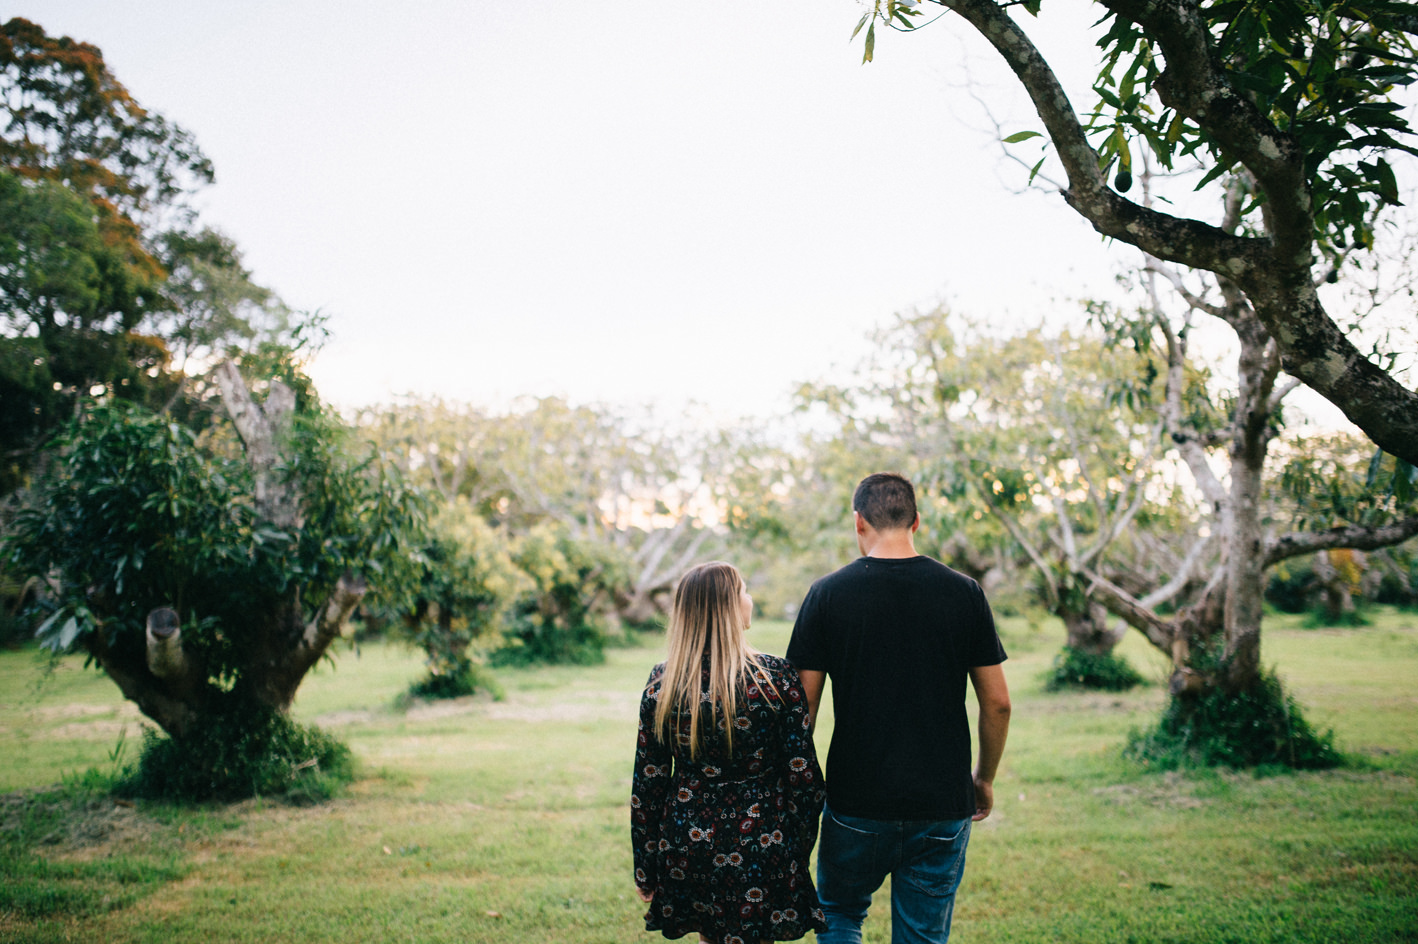 041-proposal-dan-ash_sophie-baker-photography